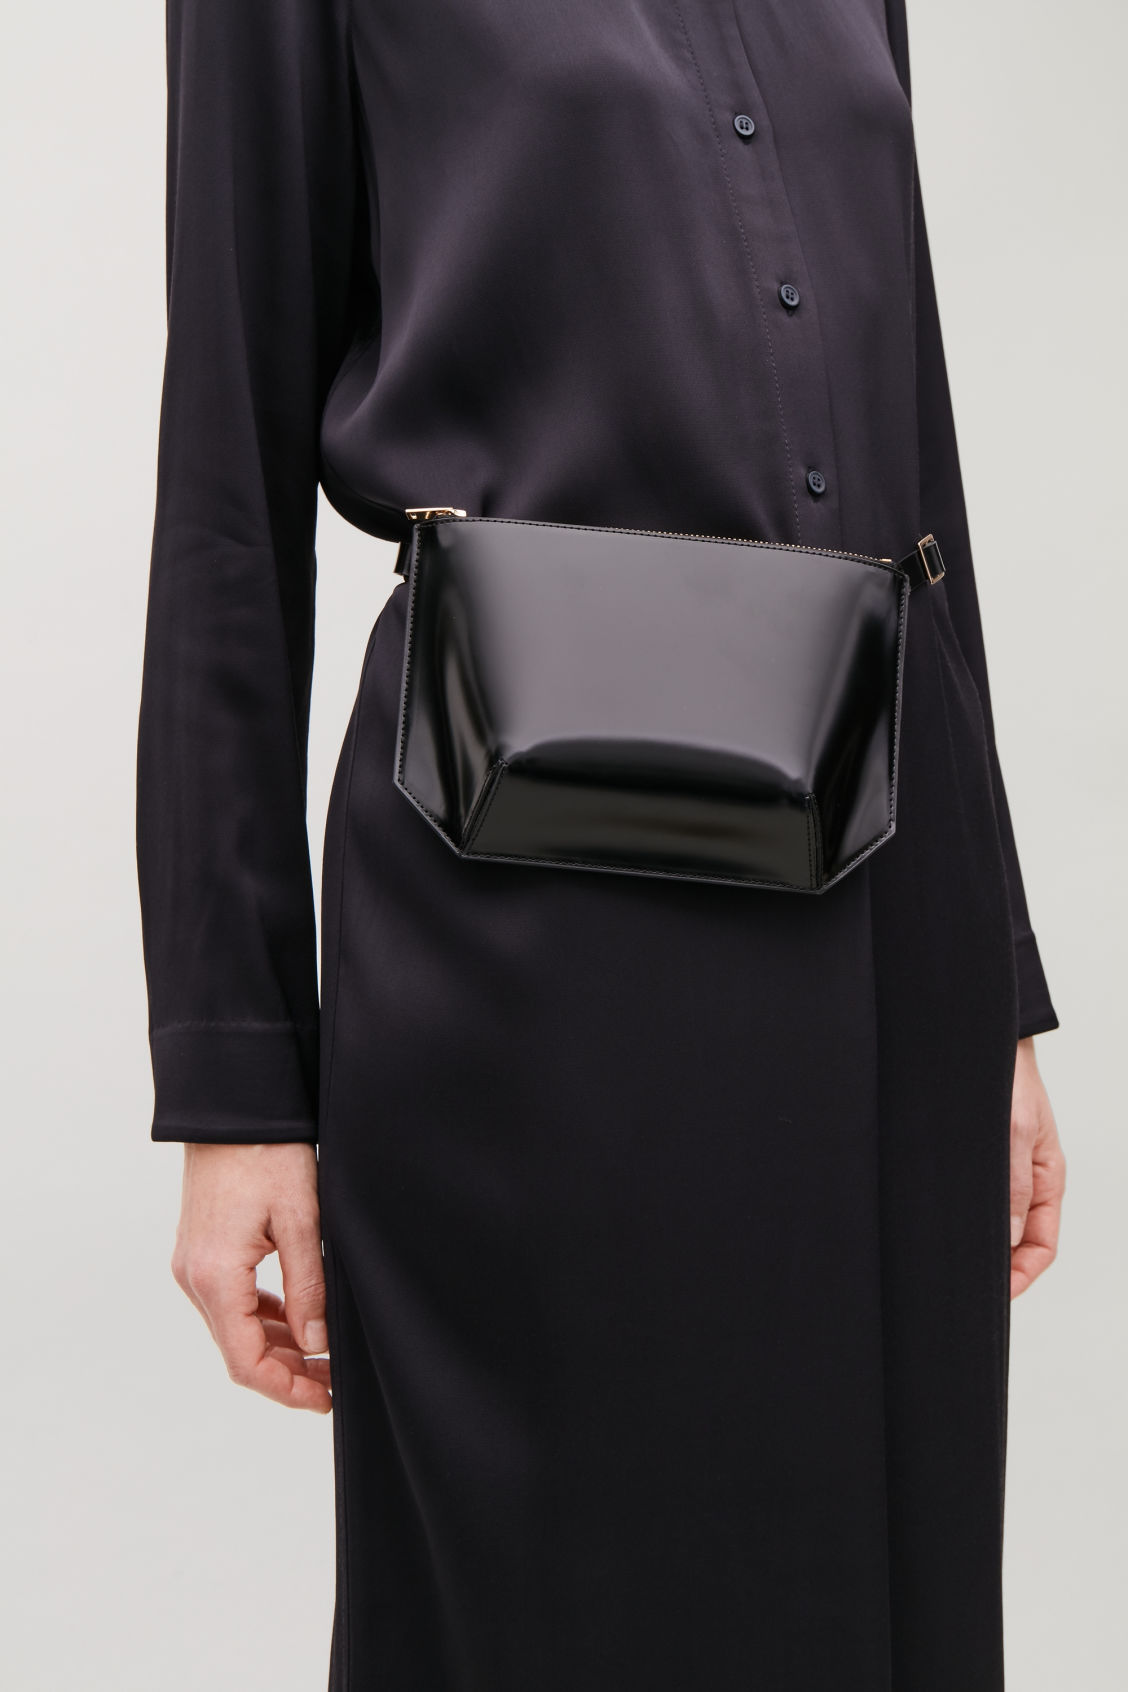 Detailed image of Cos multifunctional leather bag in black